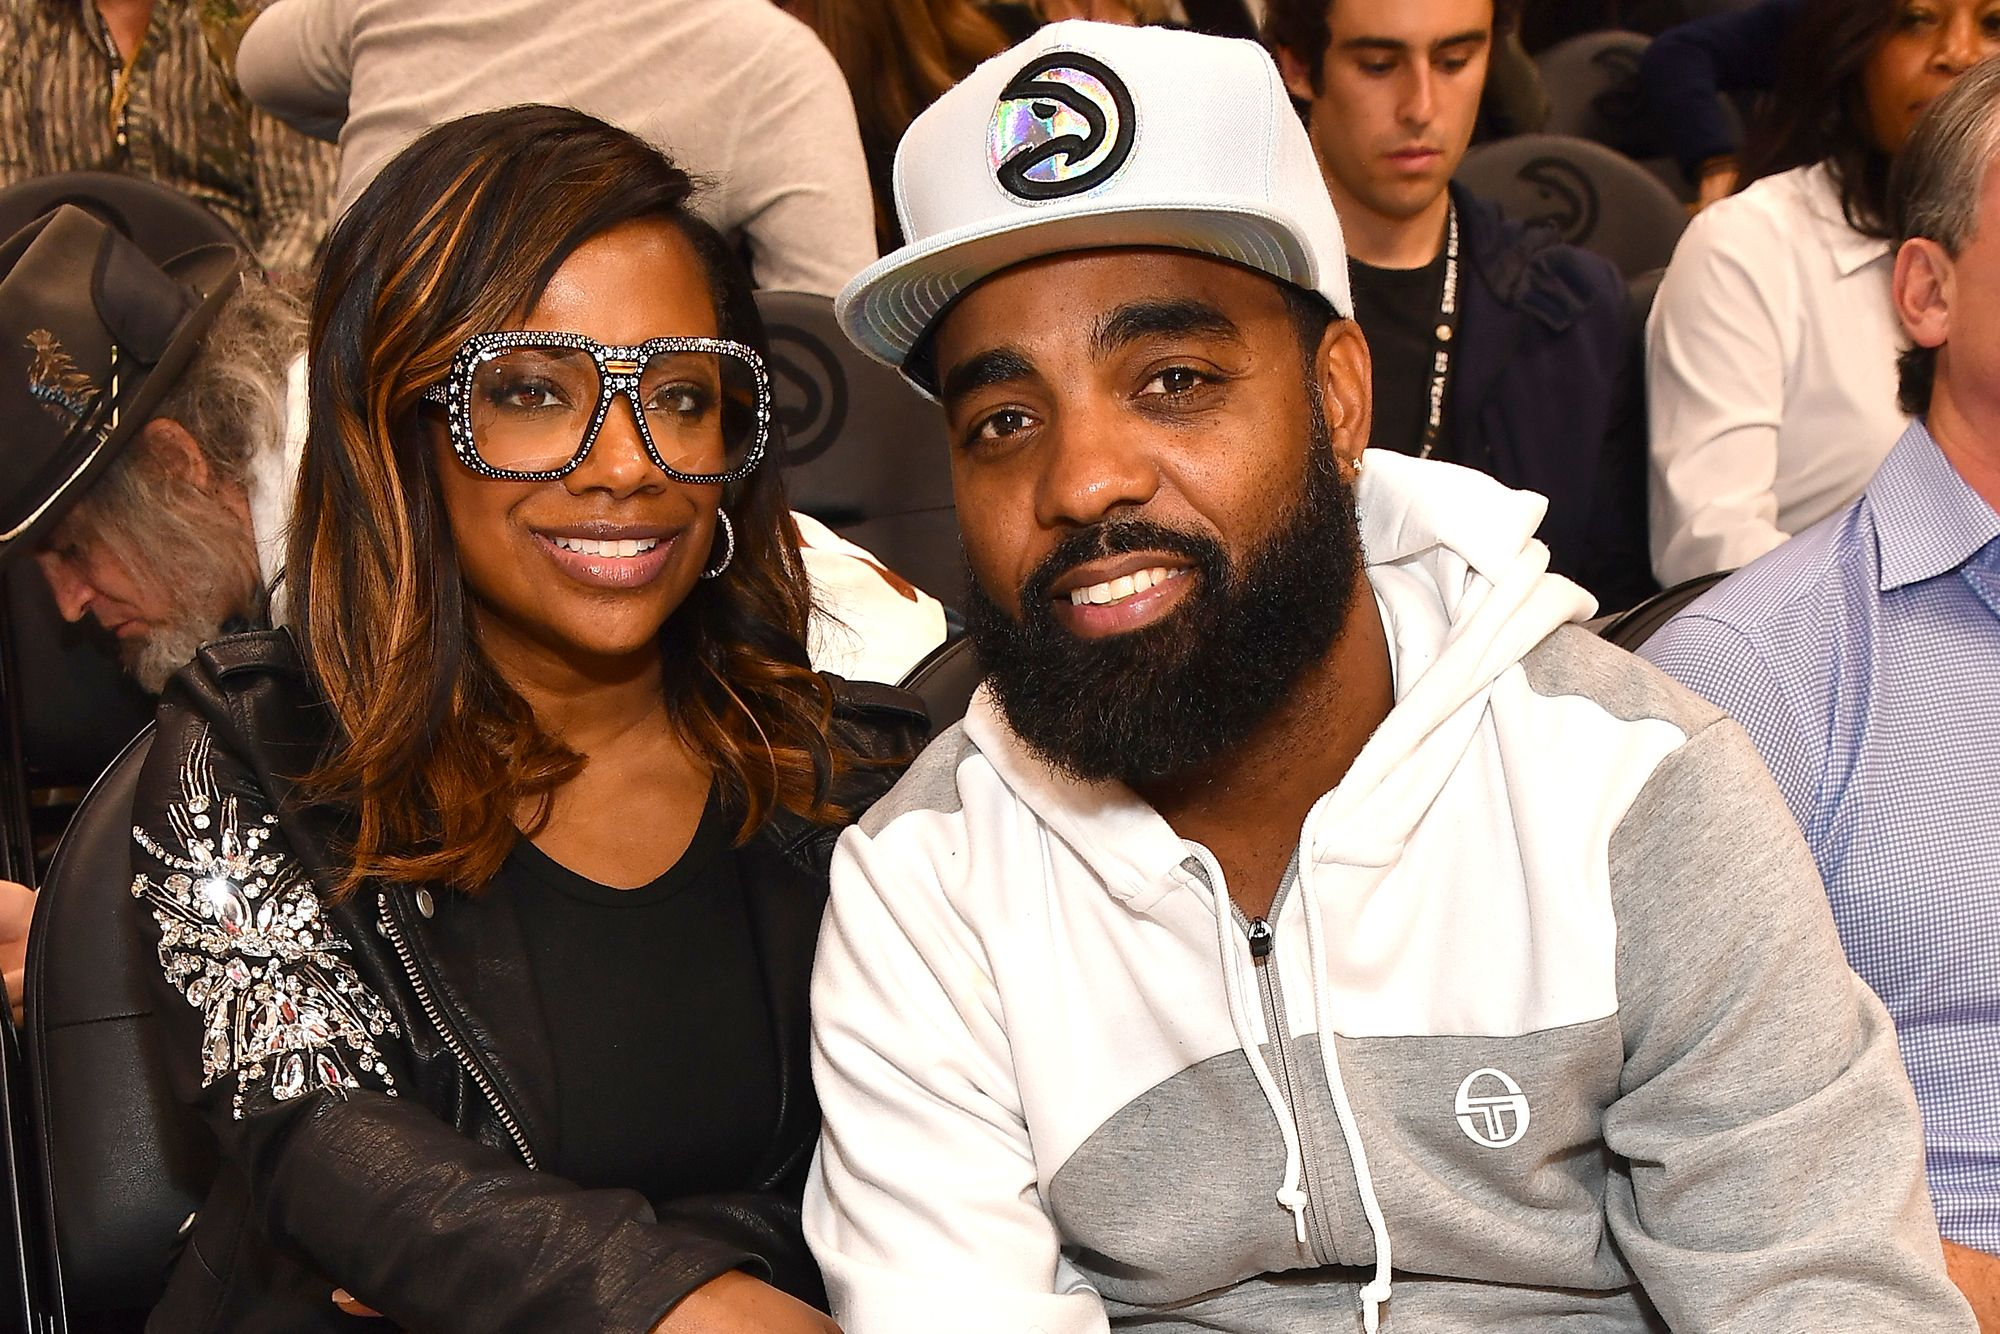 Todd Tucker Keeps Fans Entertained With Clips Featuring Kandi Burruss - See The 'Rolling With Todd' Videos